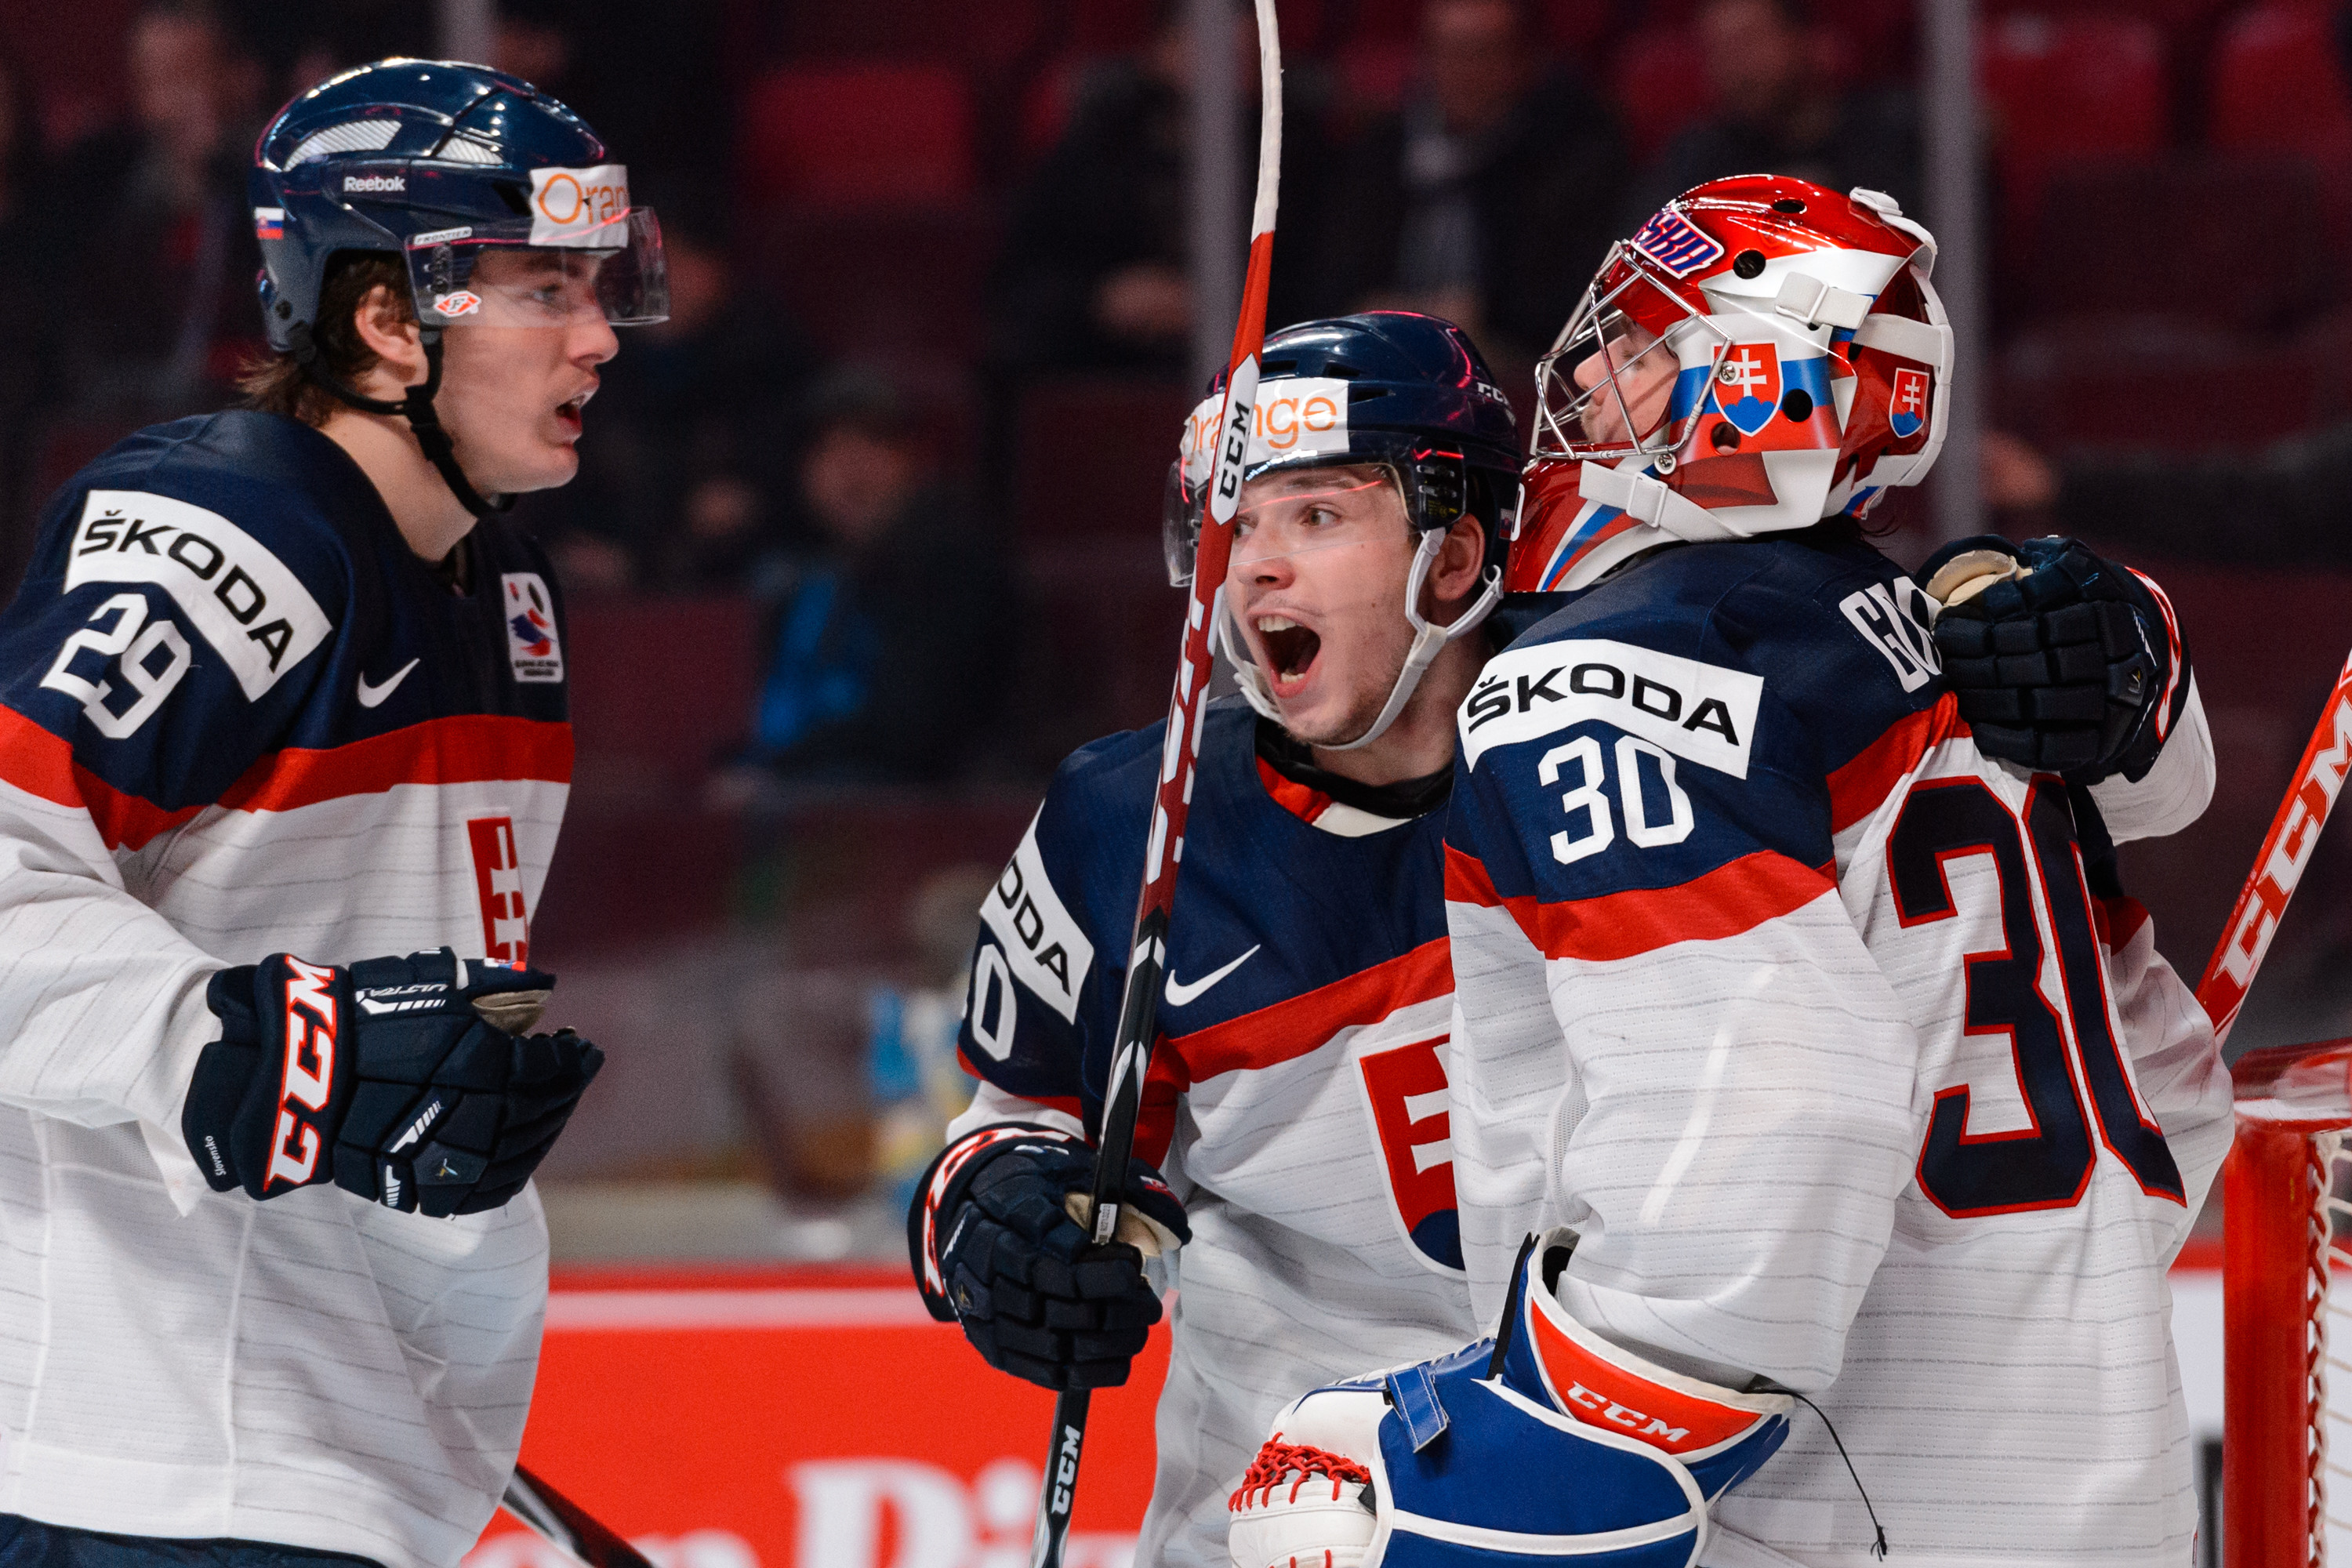 Slovakia' Denis Godla was the player of the day, making 37 stops in an upset win over Finland